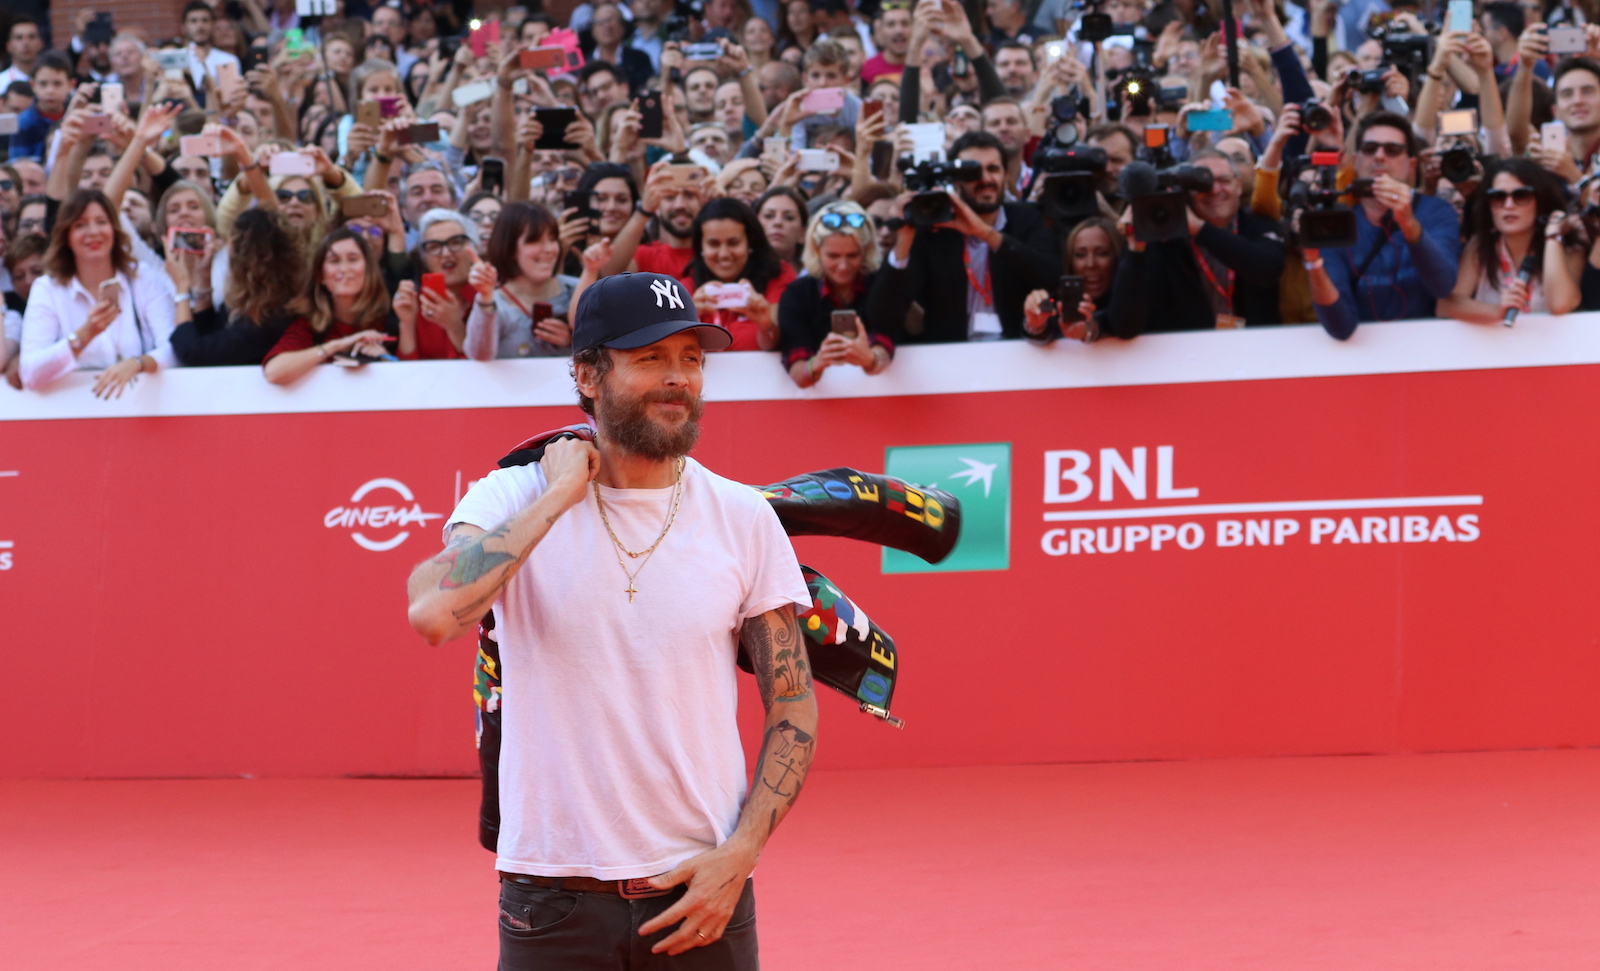 Roma 2016: Jovanotti in posa sul red carpet